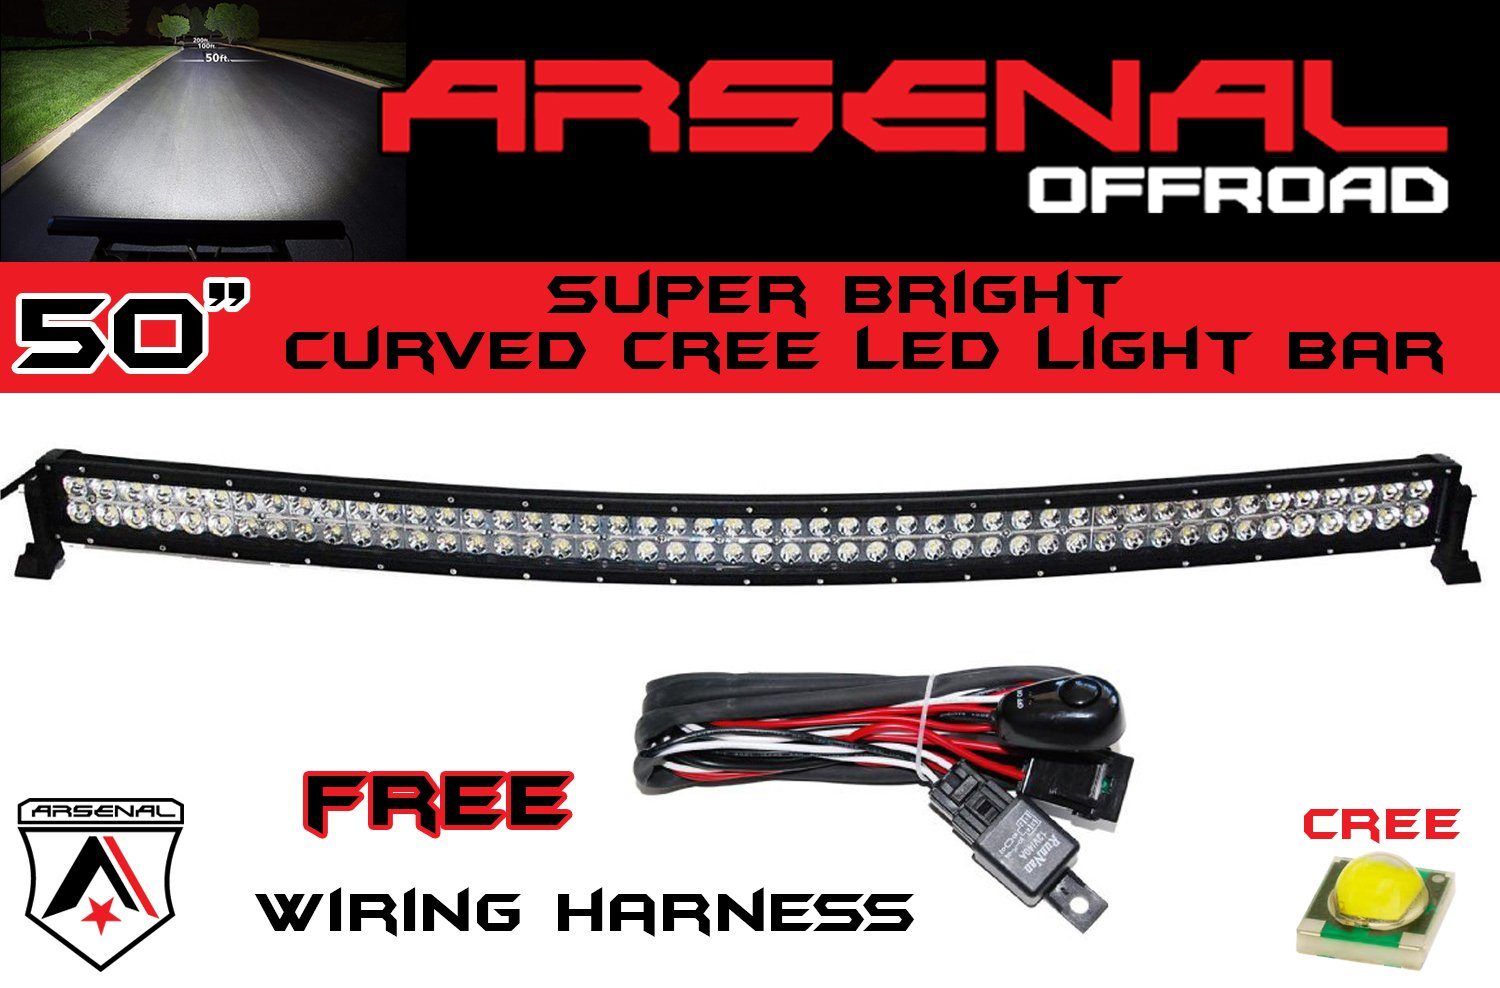 Amazon 50 inch curved 288w cree led light bar by arsenal amazon 50 inch curved 288w cree led light bar by arsenal offroad tm spot flood combo beam off road 4x4 radius fog jeeps truck mozeypictures